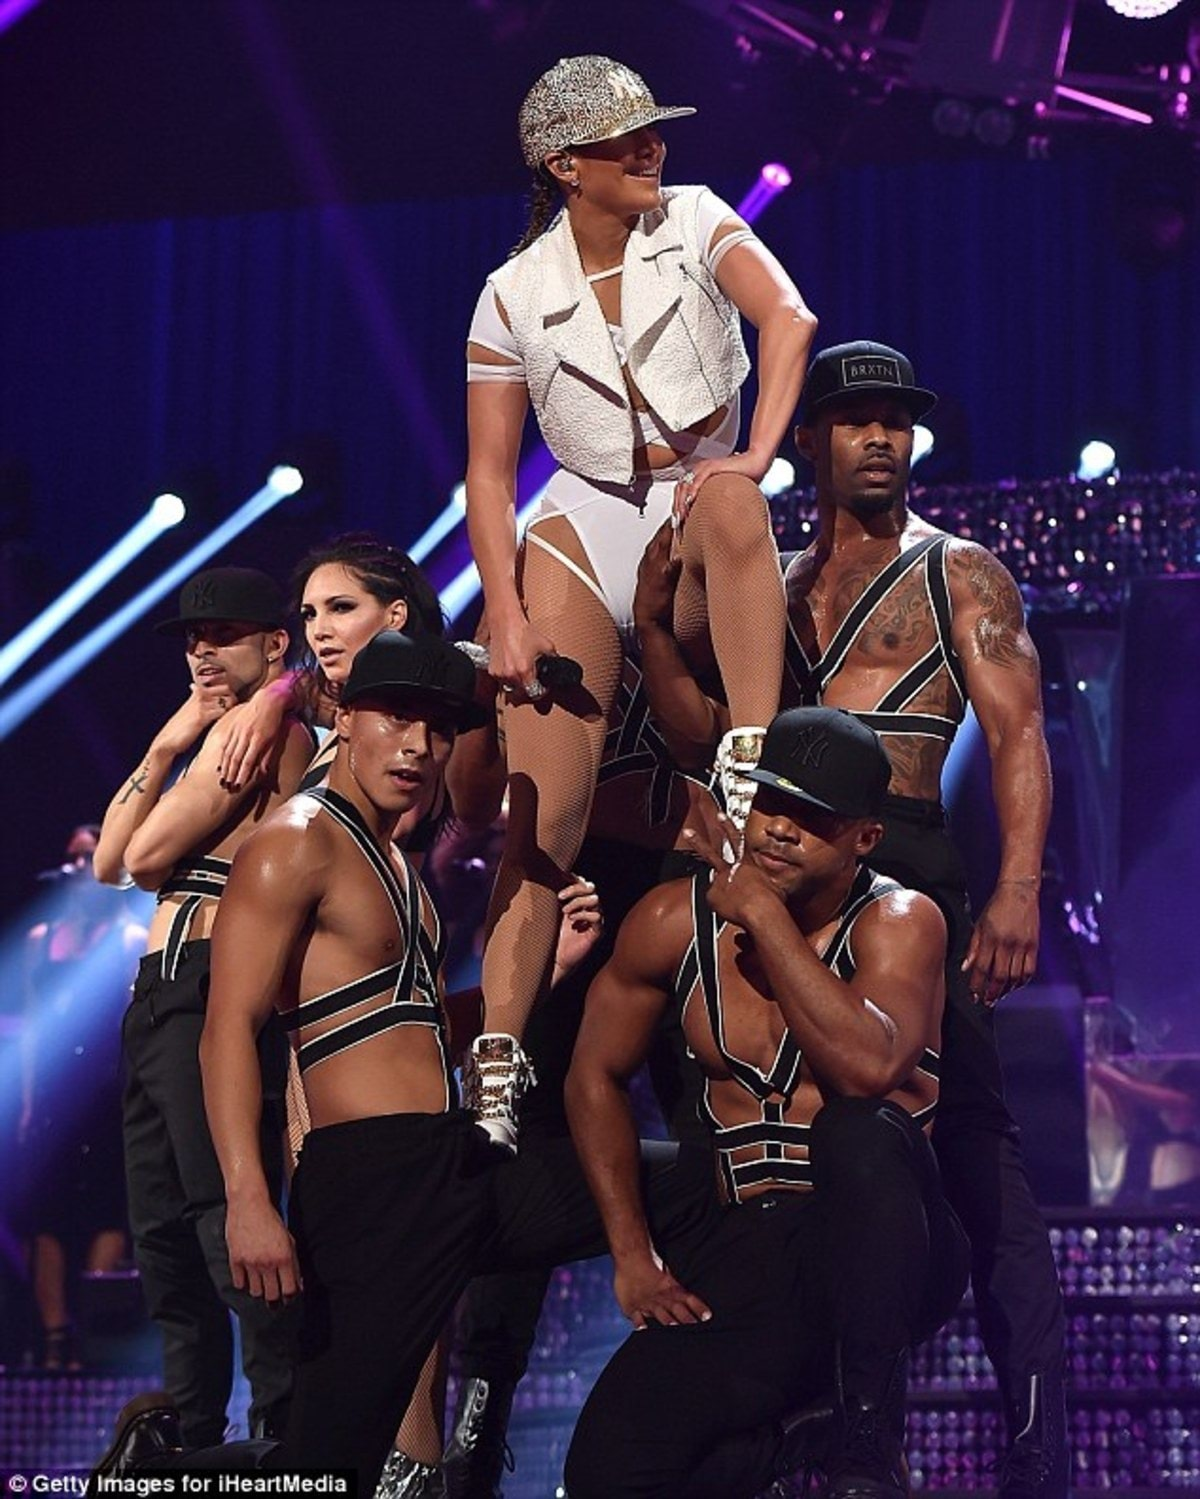 2C89004200000578-3241785-Up_high_The_performer_had_an_impressive_team_of_backing_dancers_-a-14_1442746465291